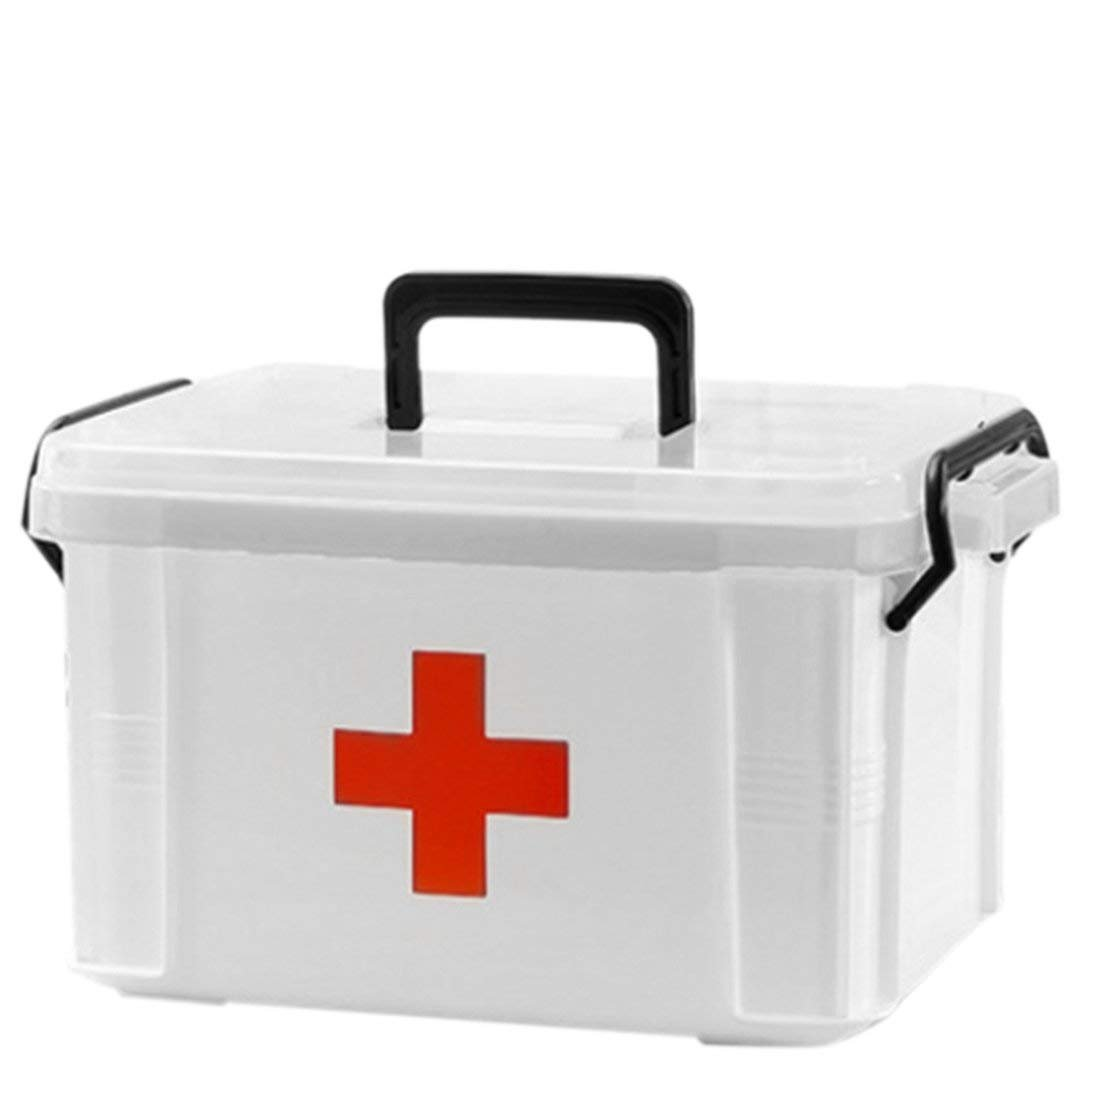 First Aid Kit Box Case,Lanticy Emergency Medicine Storage Box 2 Layer Plastic Clear First Aid Container Family Medicine Holder Cabinets Household Medical Box 24 x 17.5 x 14cm by Lanticy